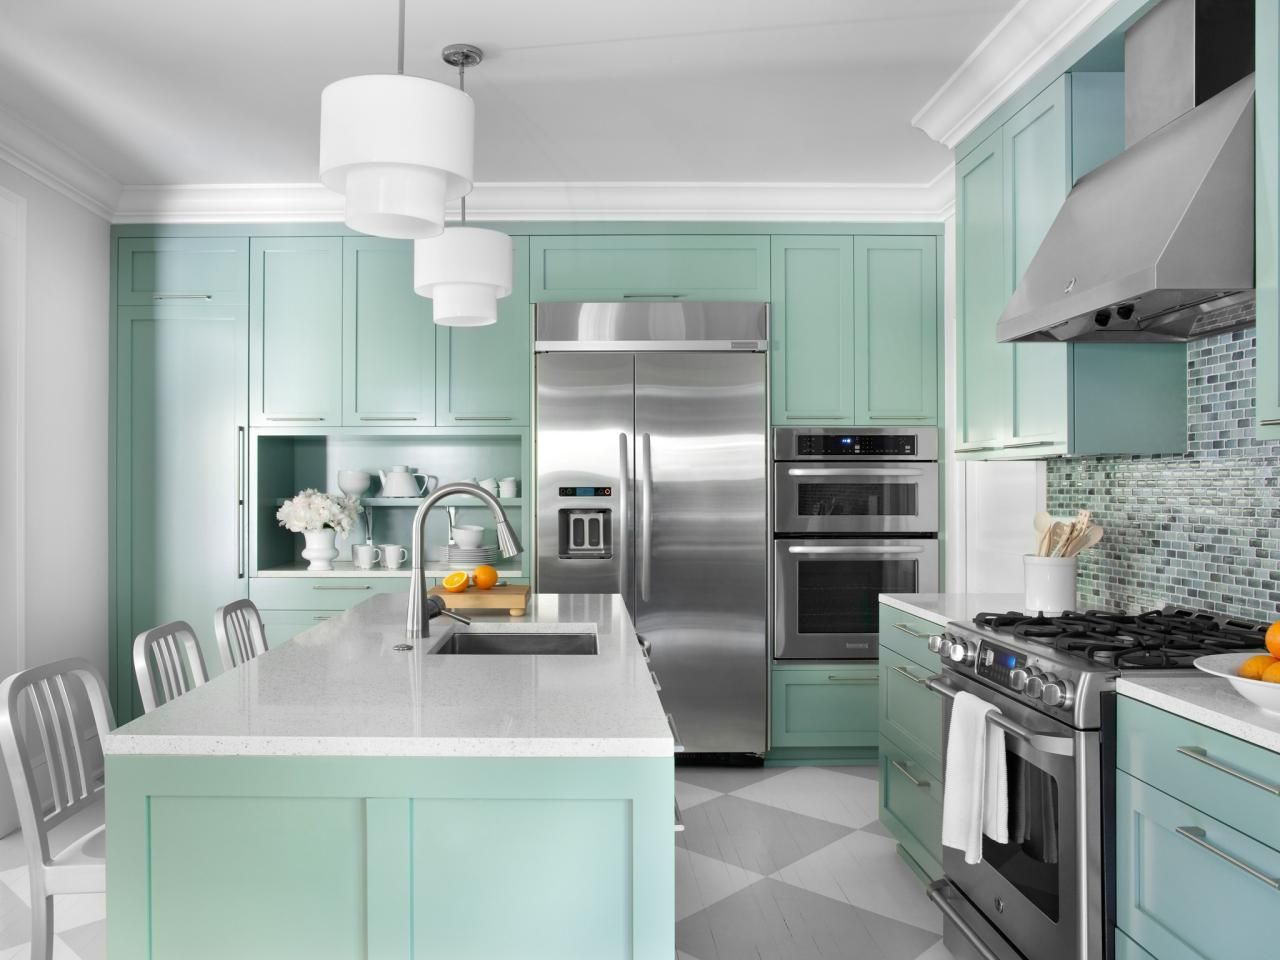 Color Ideas for Painting Kitchen Cabinets Hgtv Pictures Paint. Glossy White Kitchen Cabinets. Kitchen White Cabinet Dark Grey Floor Tiles Lovely Kitchens. The Look Two Tone Tuxedo Kitchen Counter Top